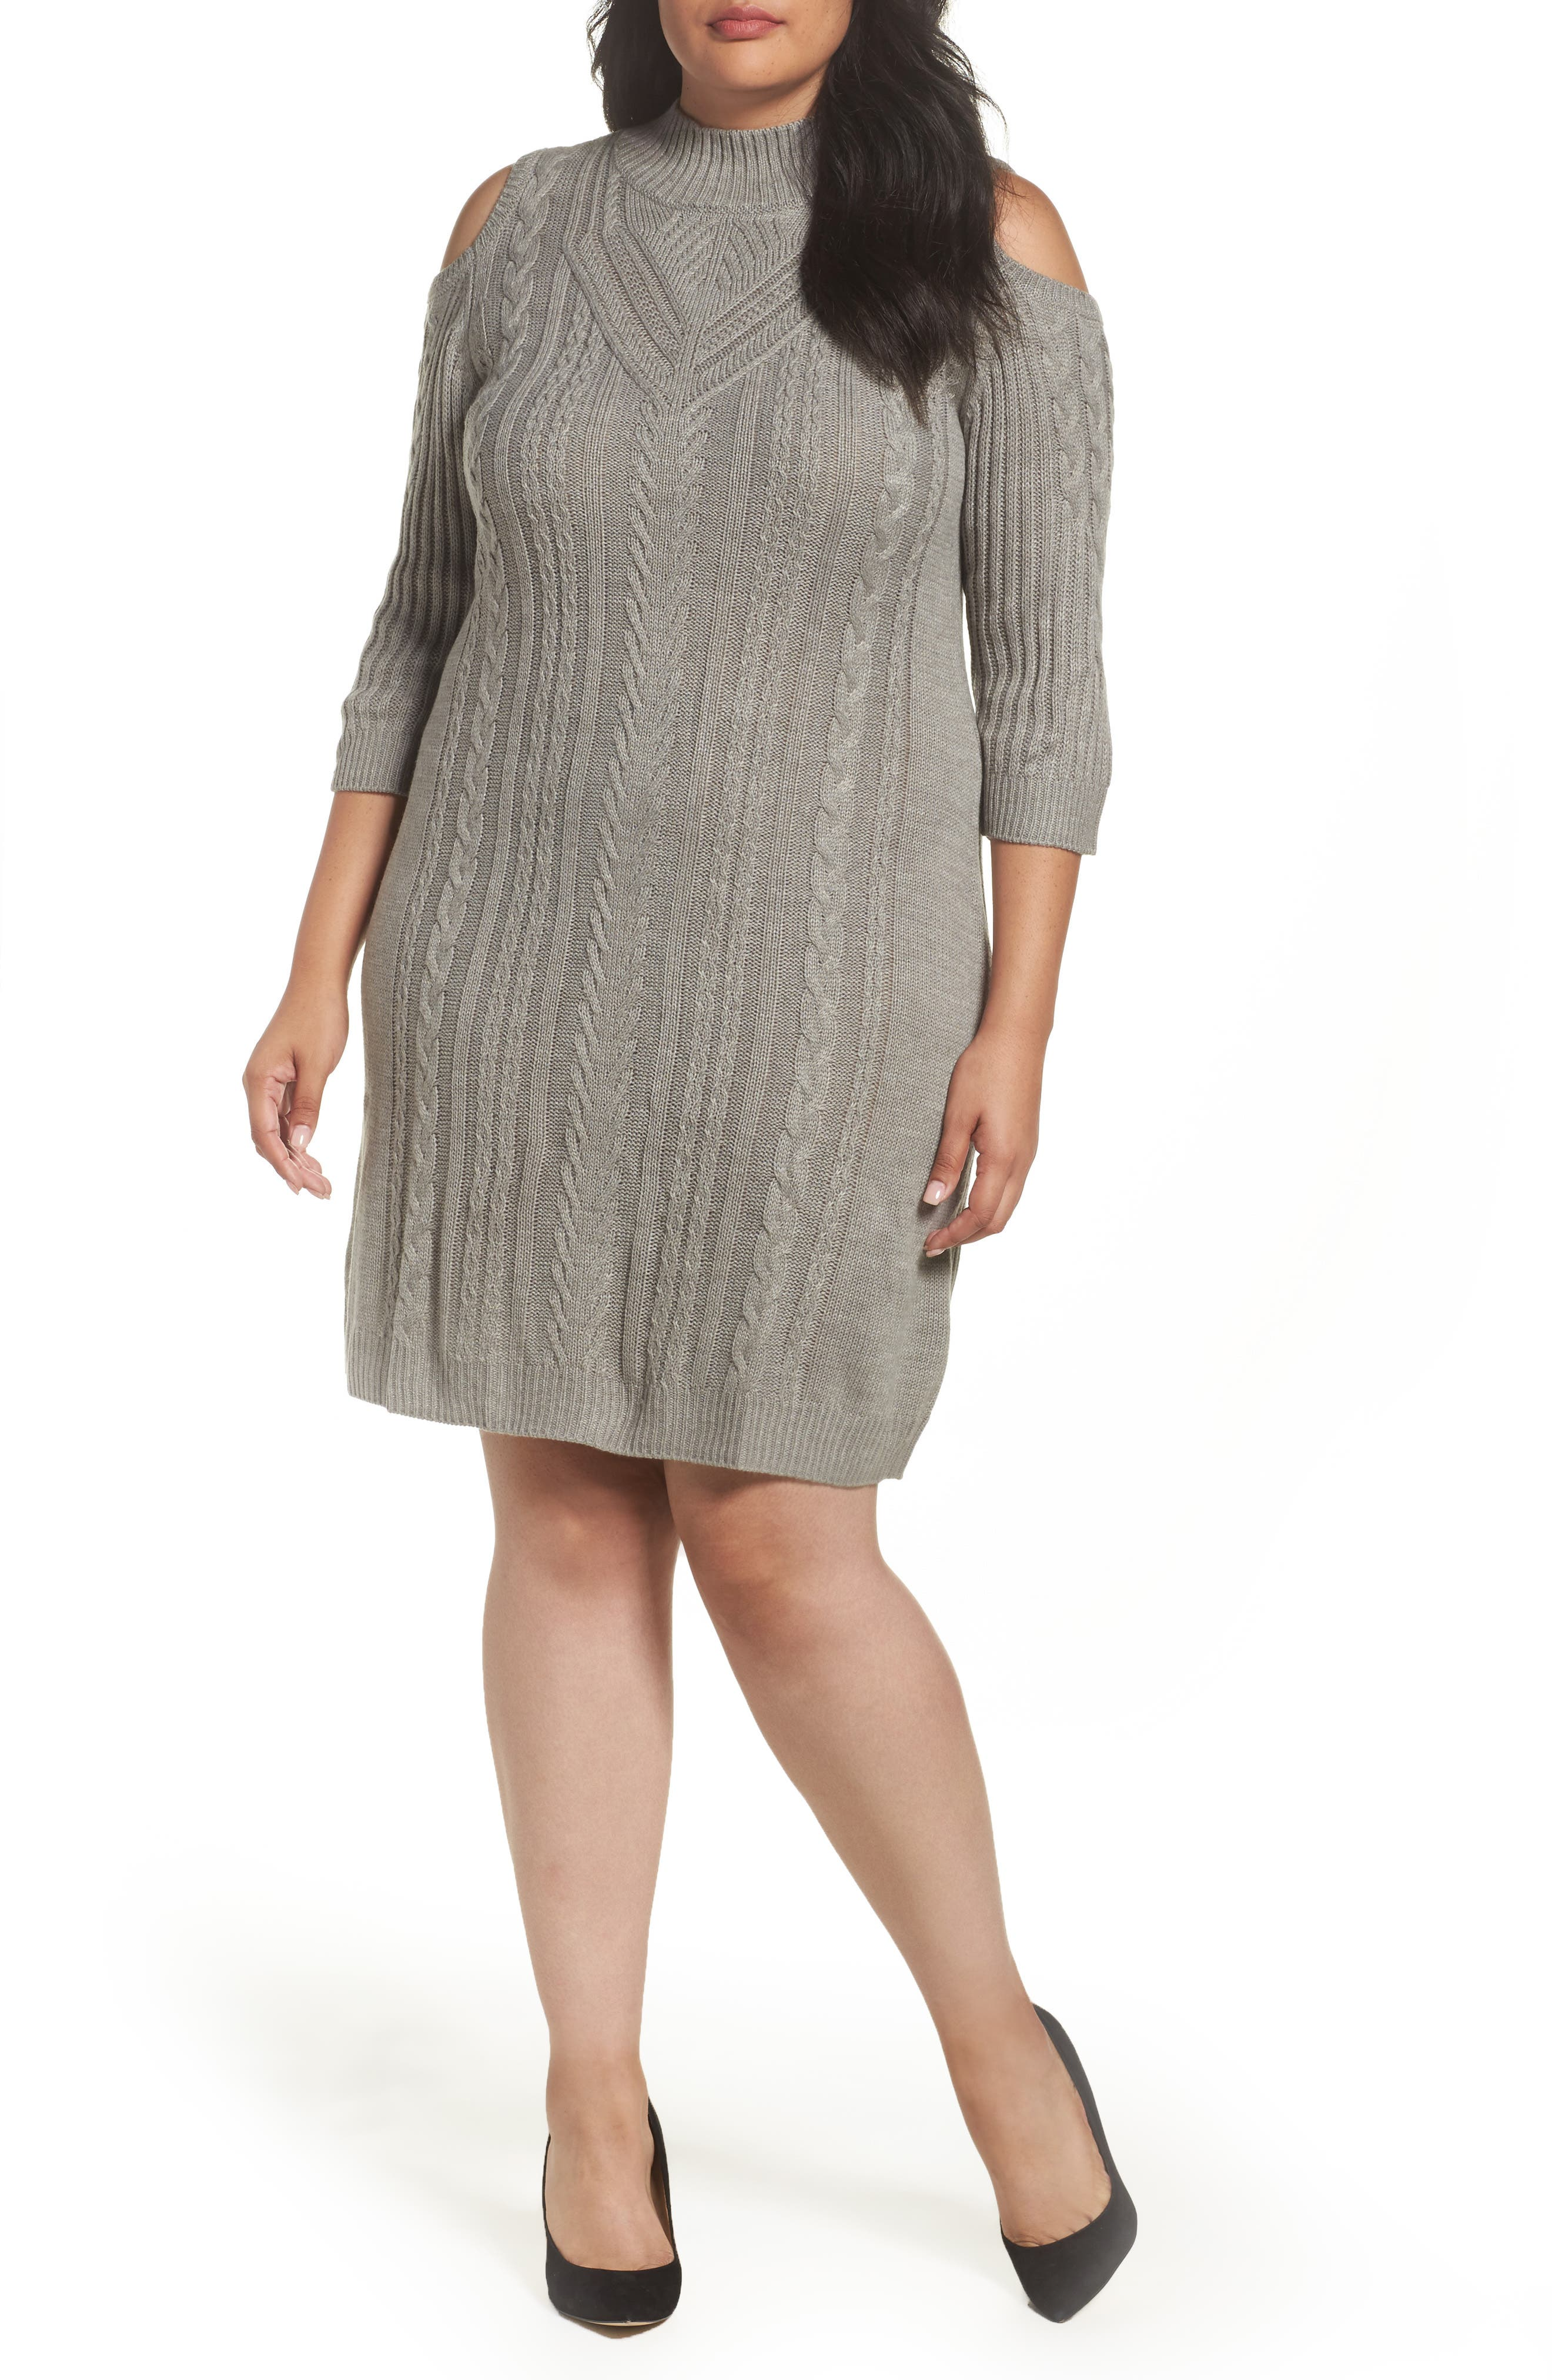 Alternate Image 1 Selected - Eliza J Cold Shoulder Cable Sweater Dress (Plus Size)